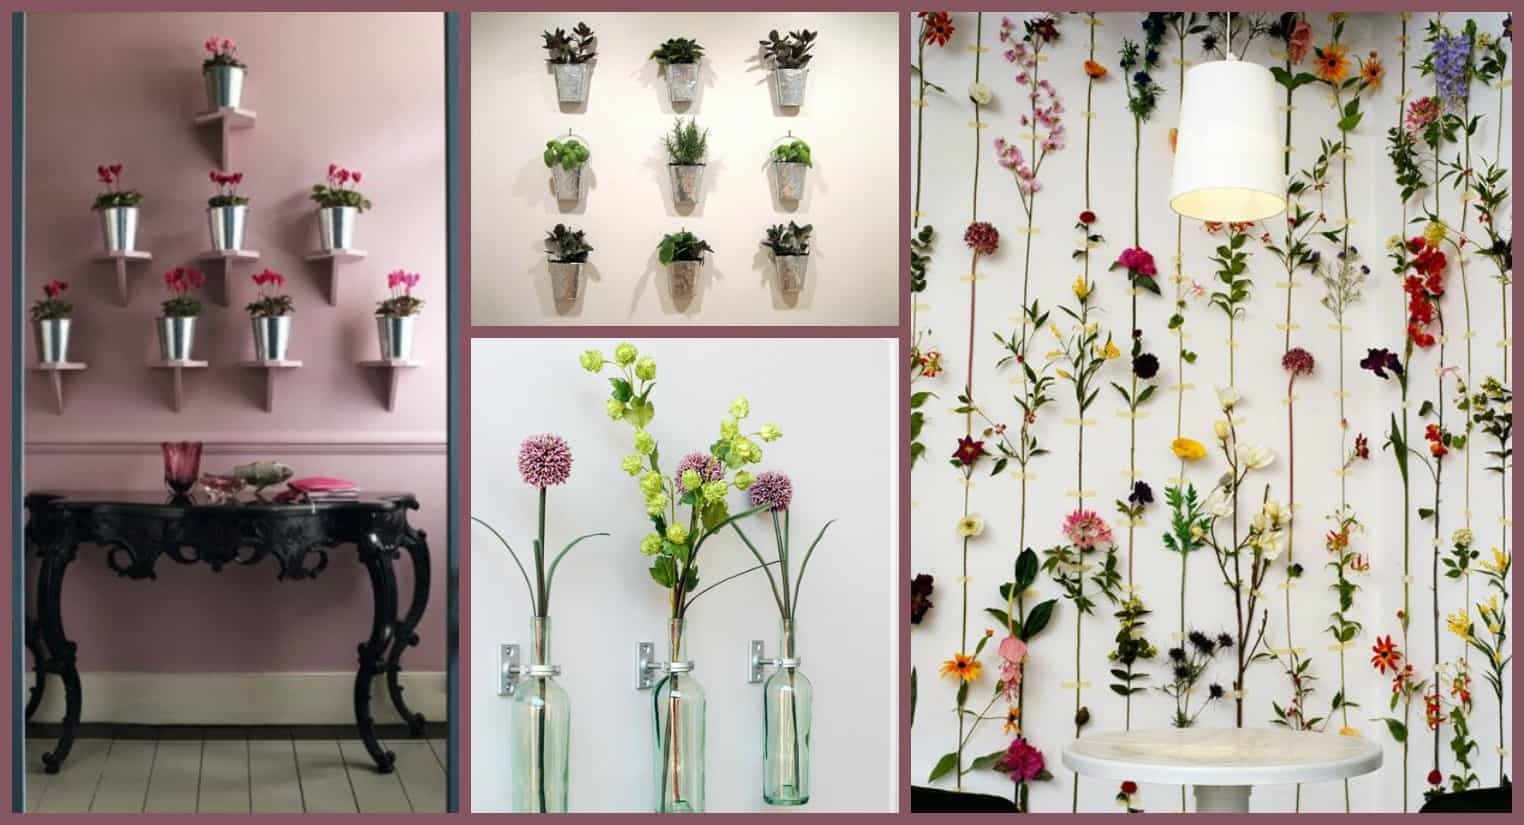 Diy 10 idee su come decorare una parete di casa - Decorare le piastrelle ...